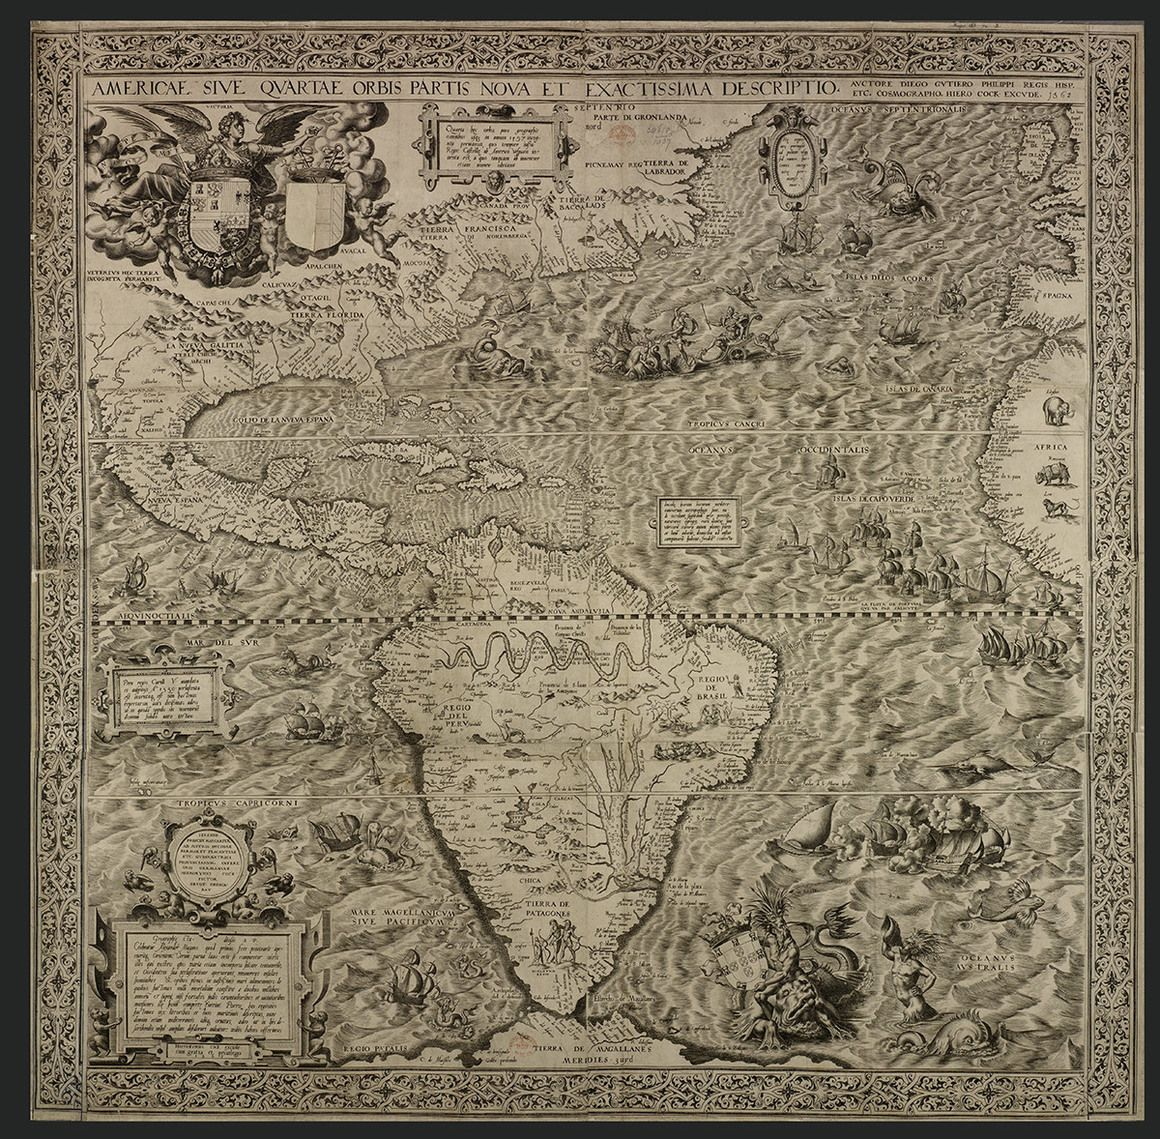 in 1562 map makers thought america was full of mermaids giants